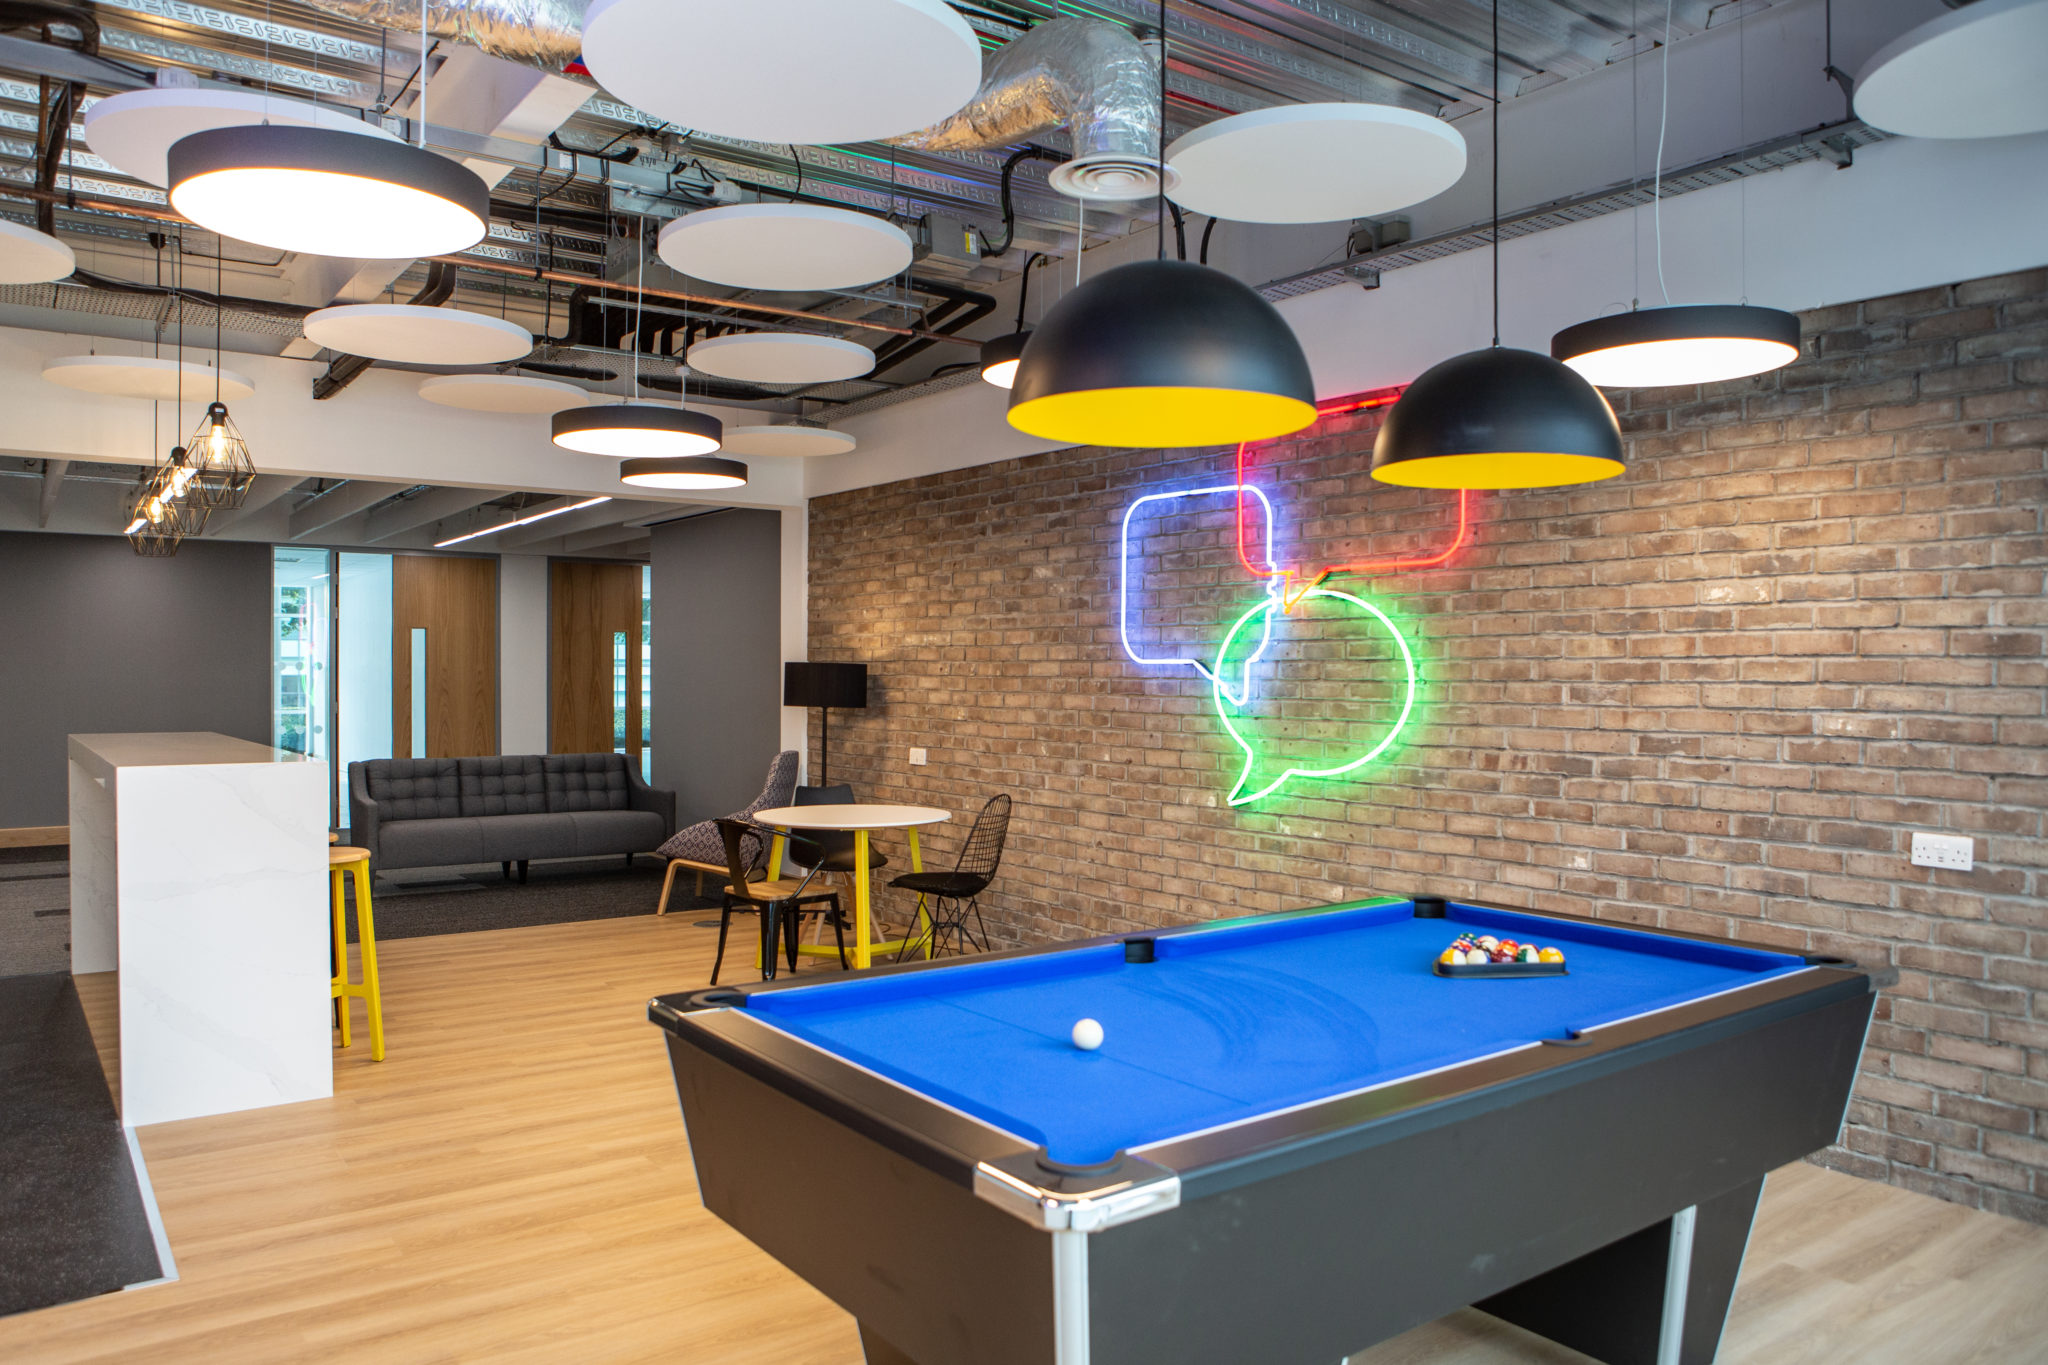 Pool table inside the Neon building office space